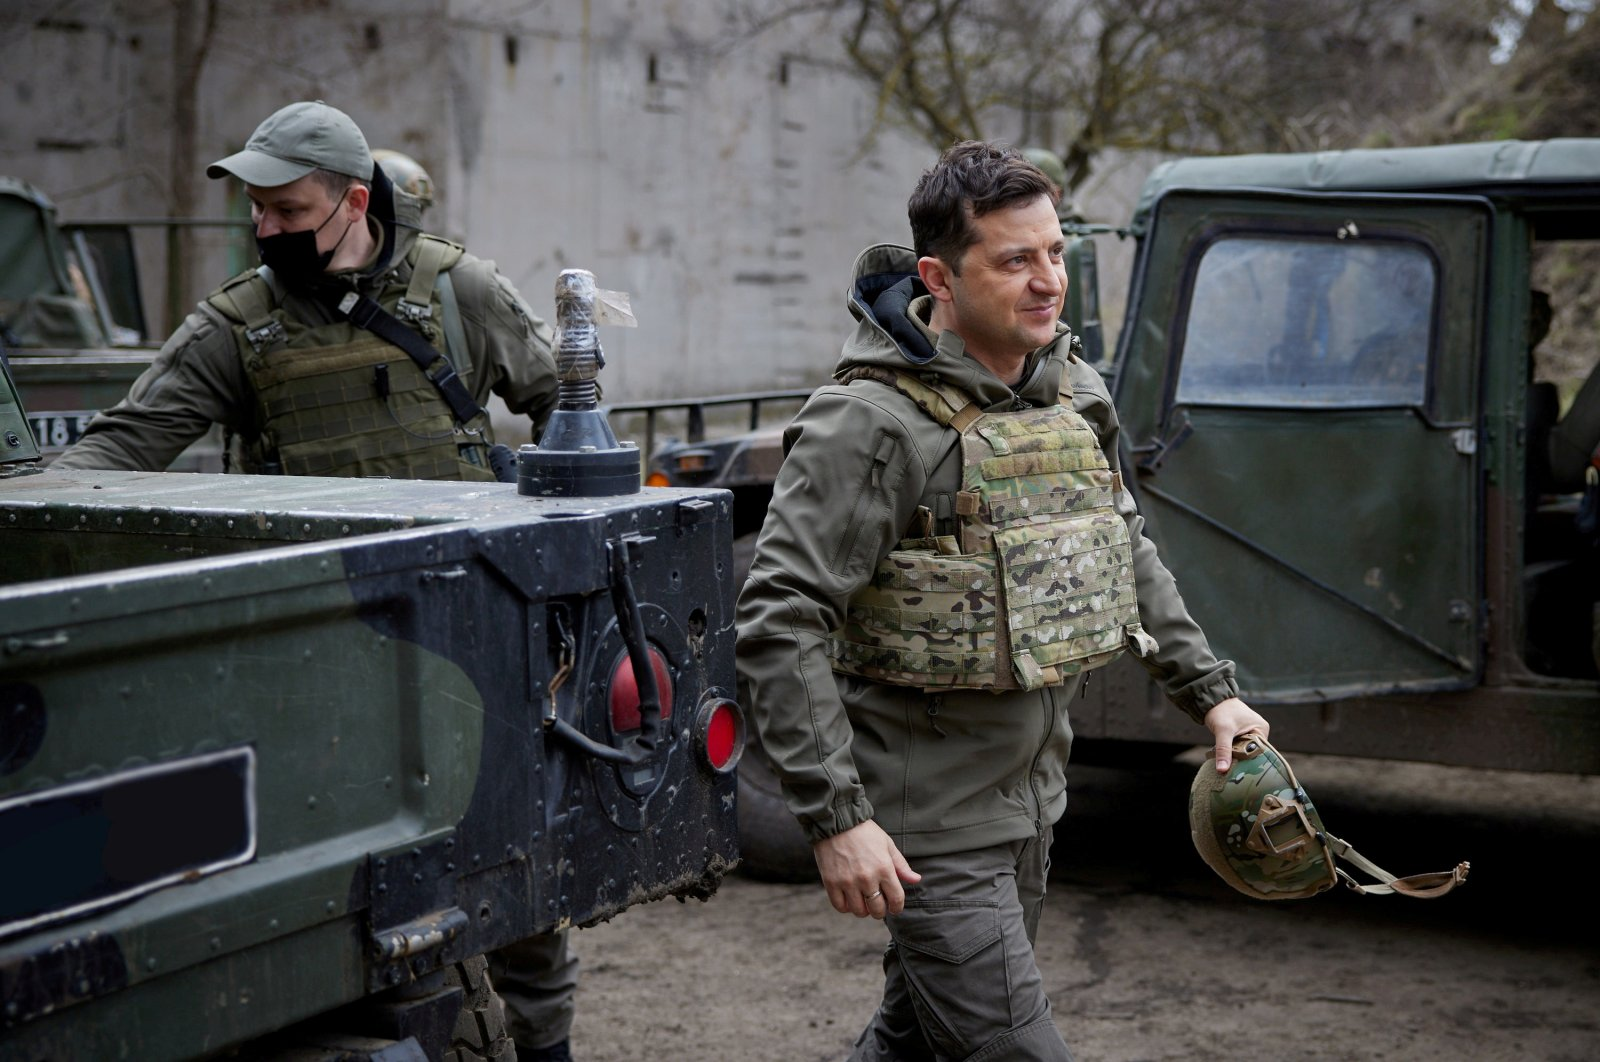 Ukraine's President Volodymyr Zelenskiy visits positions of armed forces near the front line with Russian-backed separatists in Donbass region, Ukraine, April 9, 2021. (Ukrainian Presidential Press Service via Reuters)